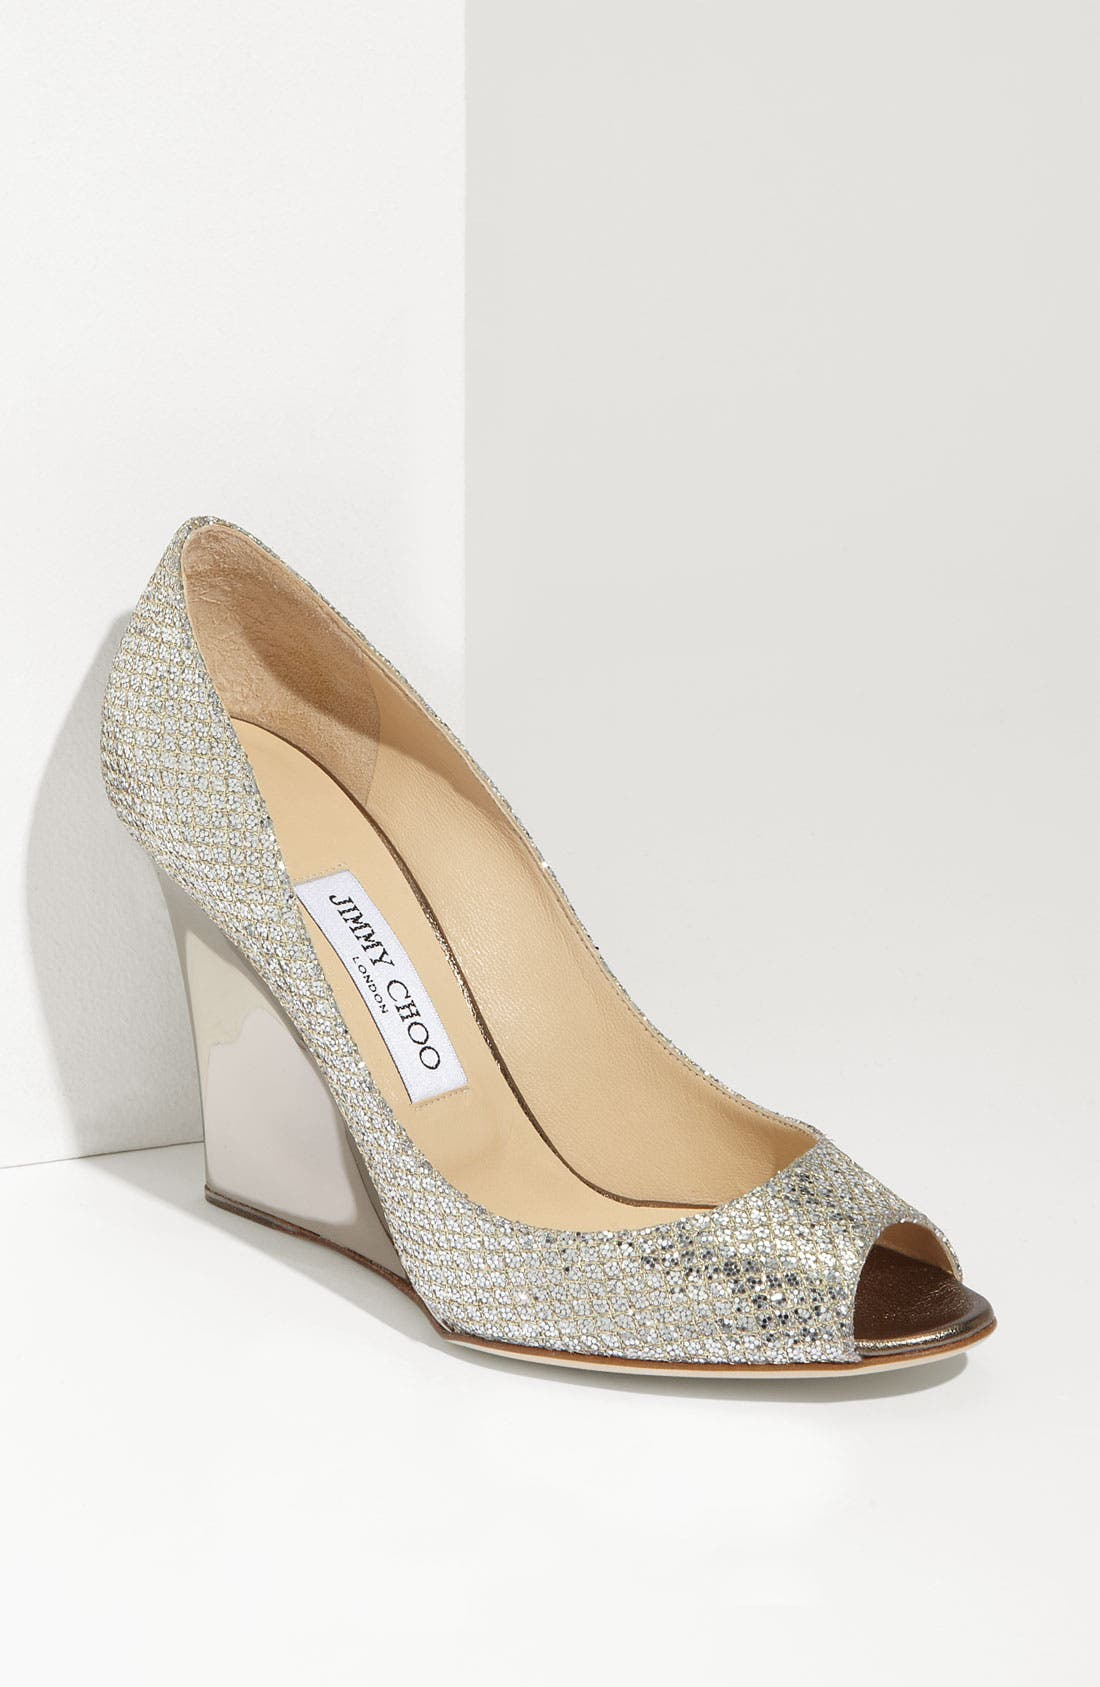 Alternate Image 1 Selected - Jimmy Choo 'Bello' Glitter Wedge